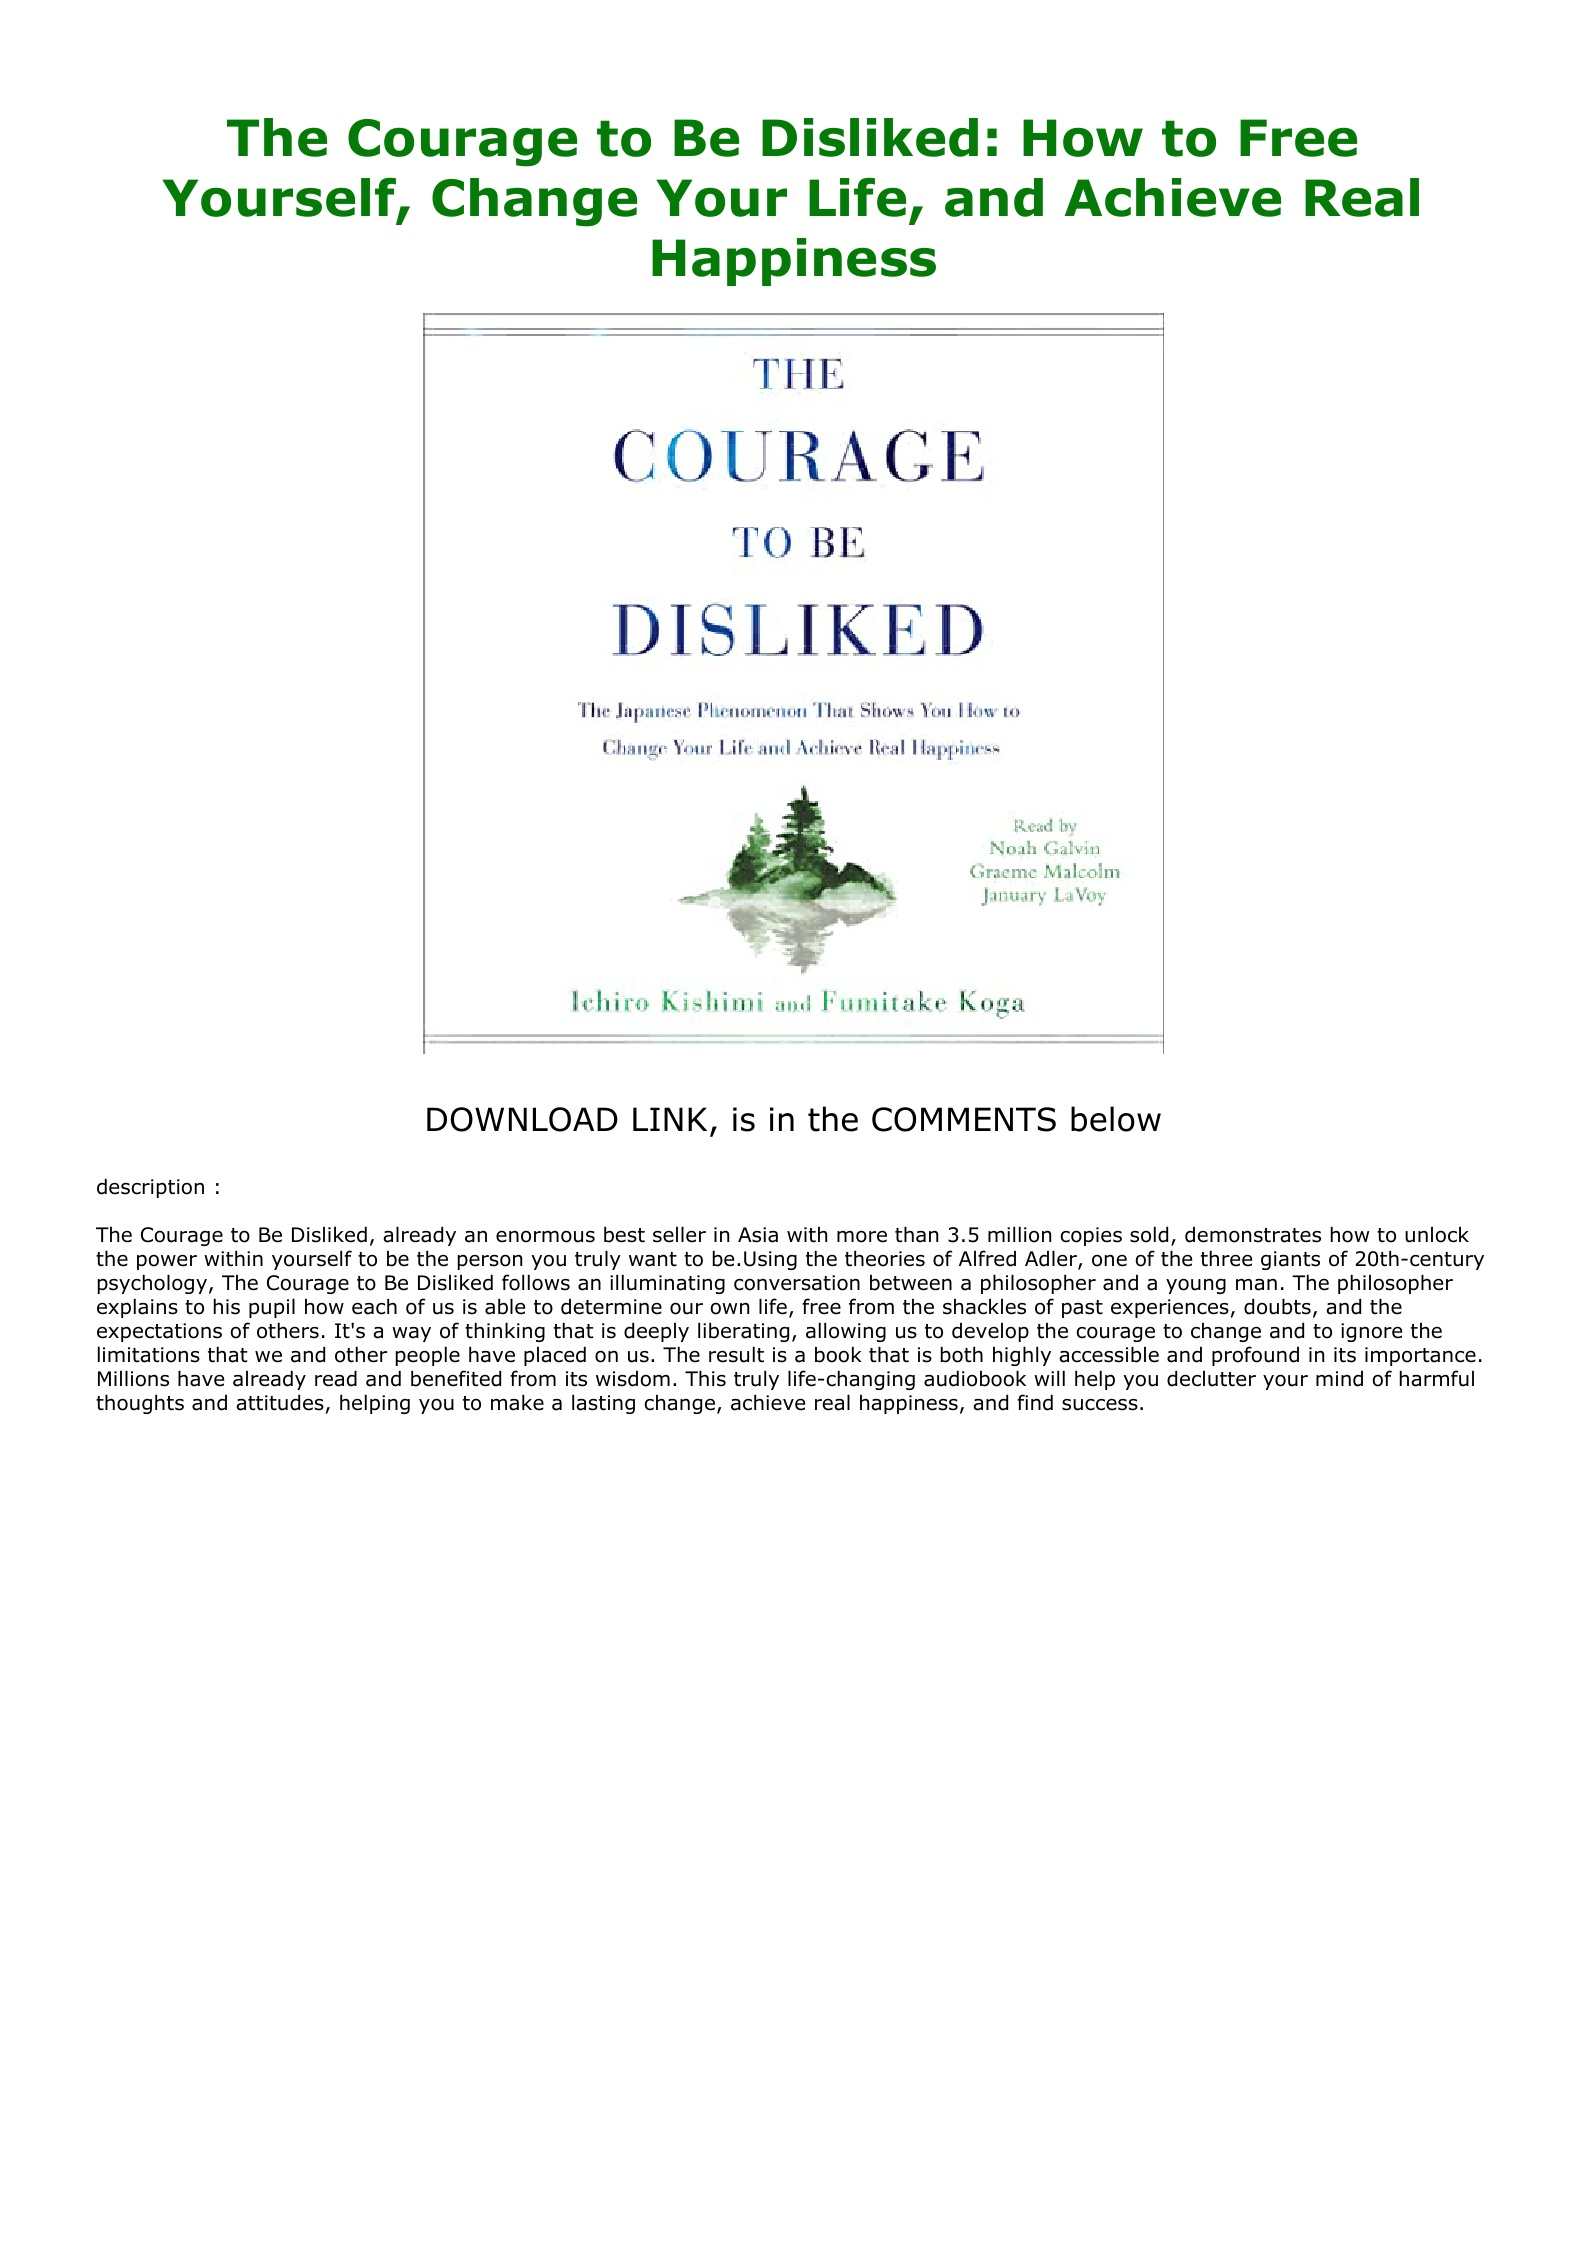 The Courage To Be Disliked Free Pdf